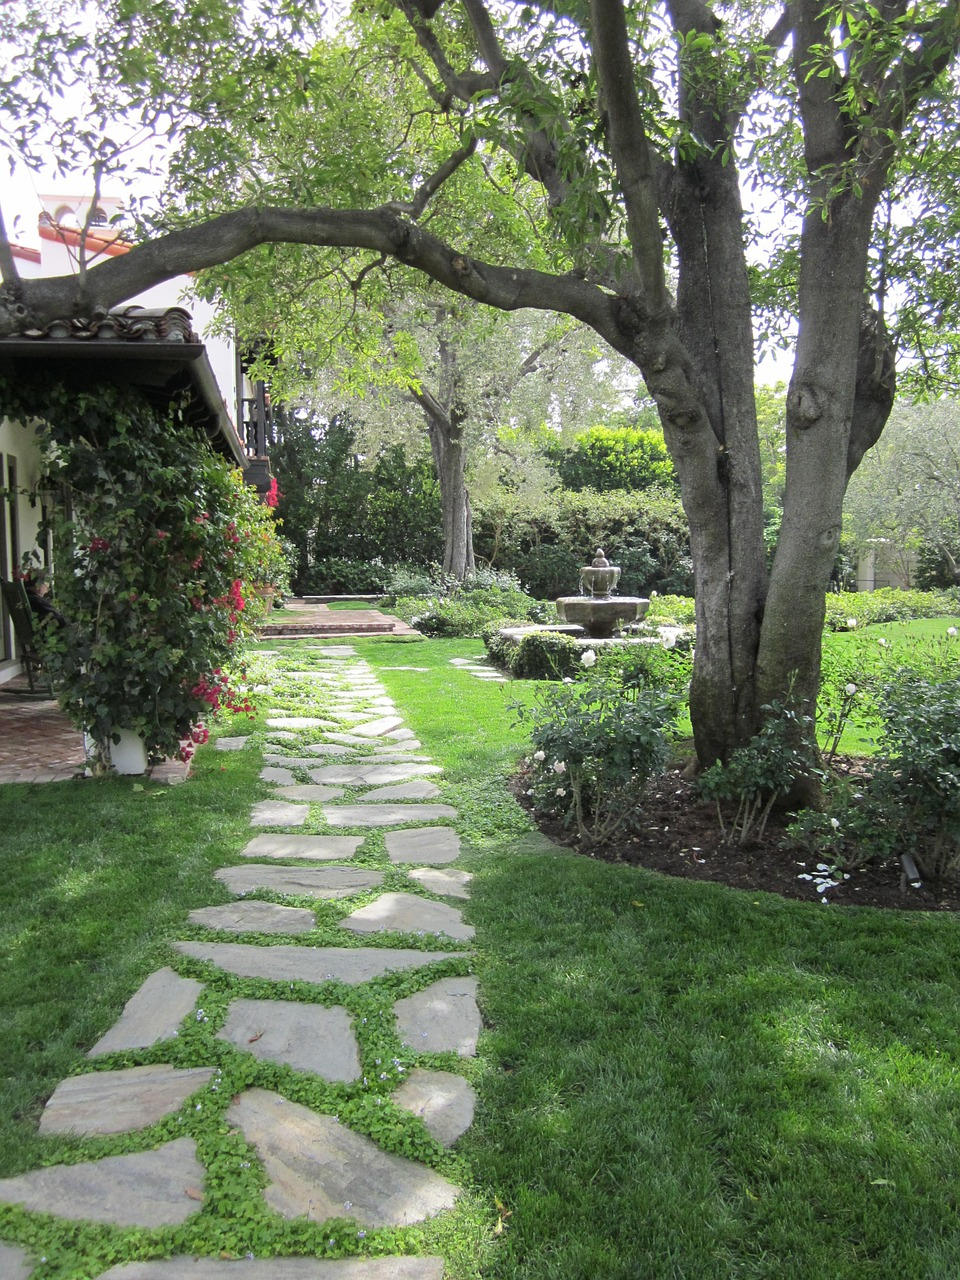 Guest post redesign your own garden paradise with for Redesign your garden